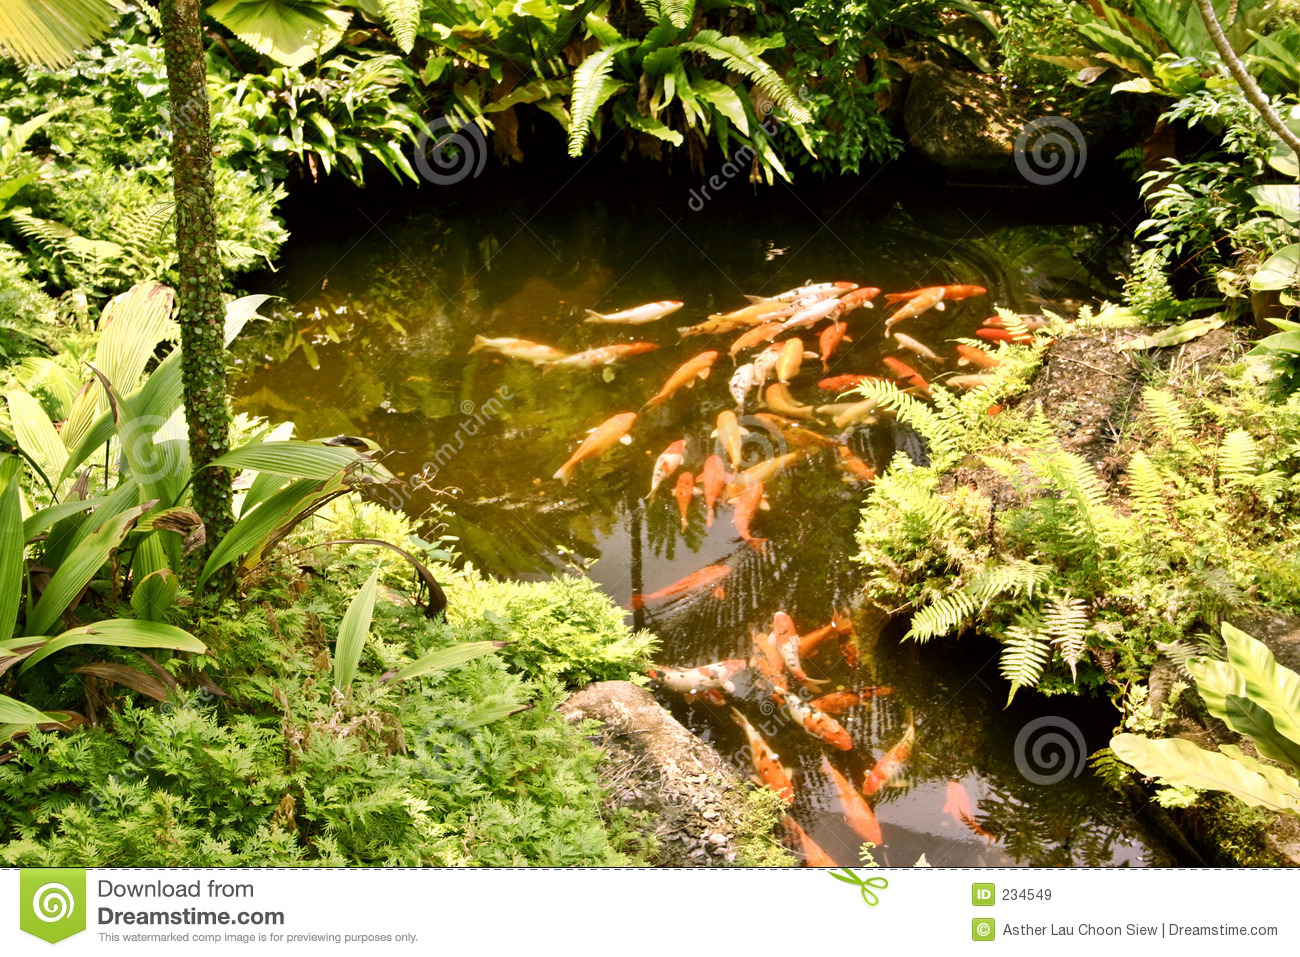 Koi carp in pond royalty free stock images image 234549 for Golden ornamental pond fish crossword